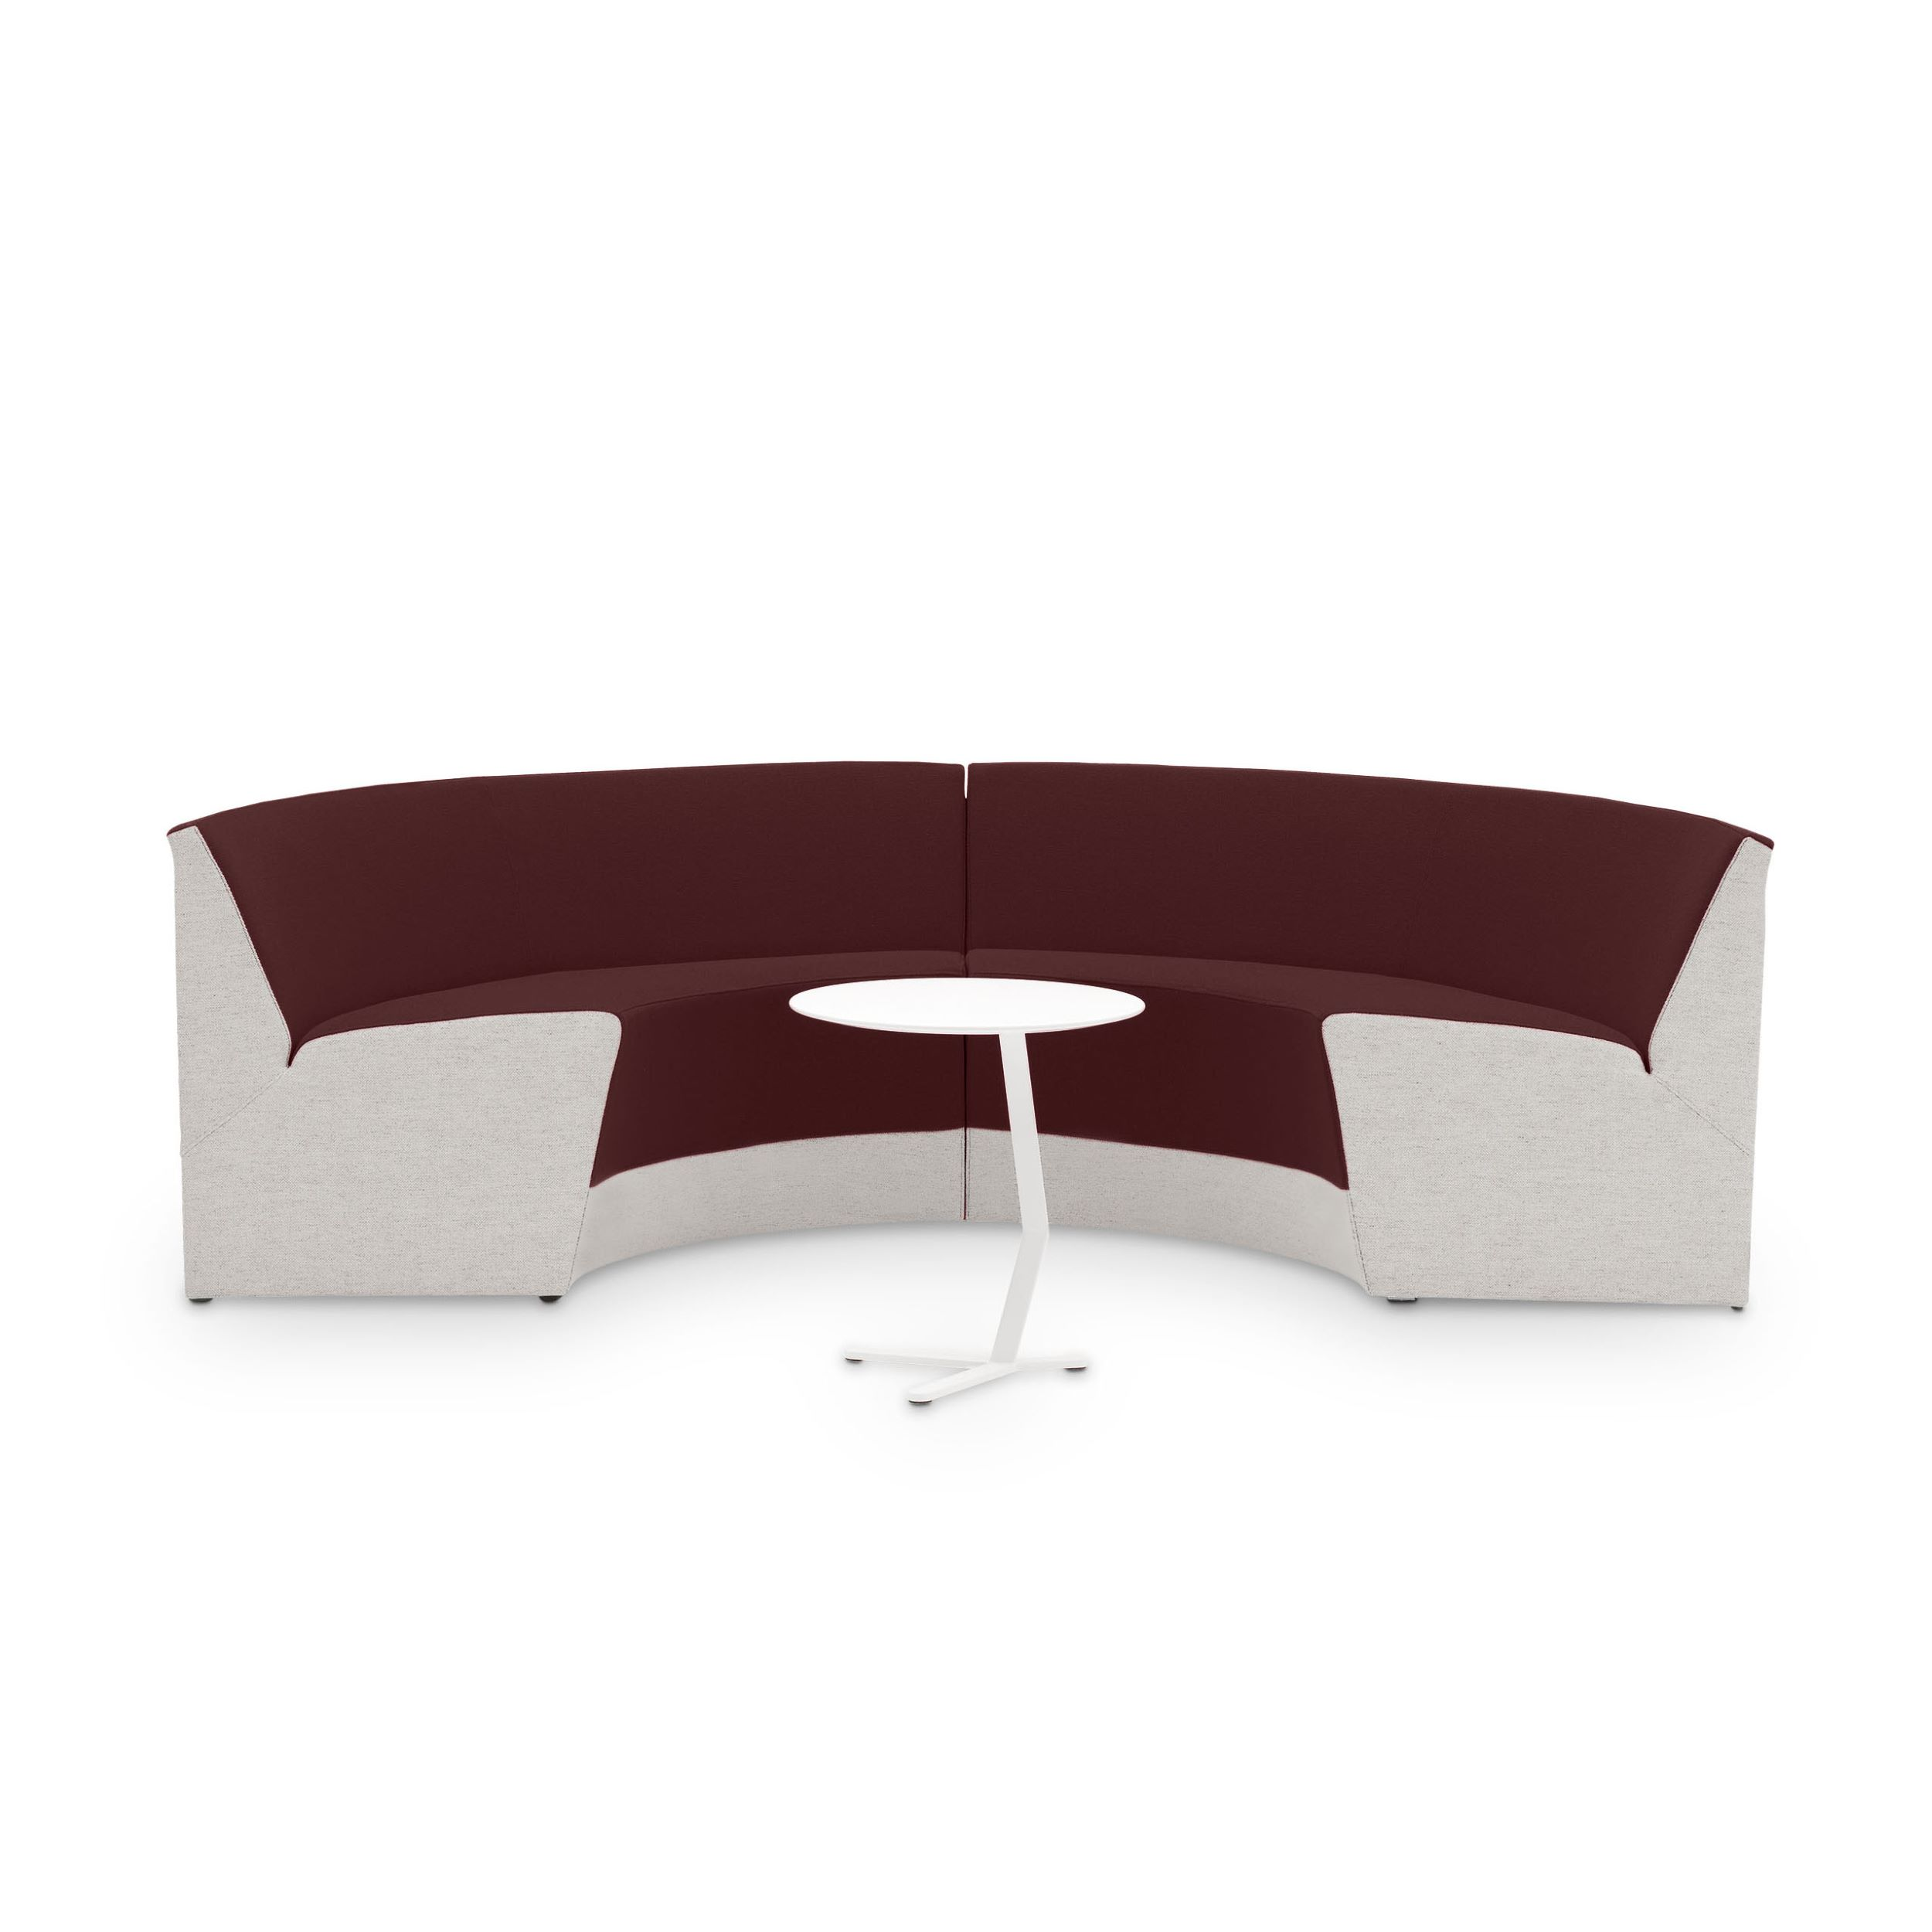 King Sofa Quarter Circle Offecct